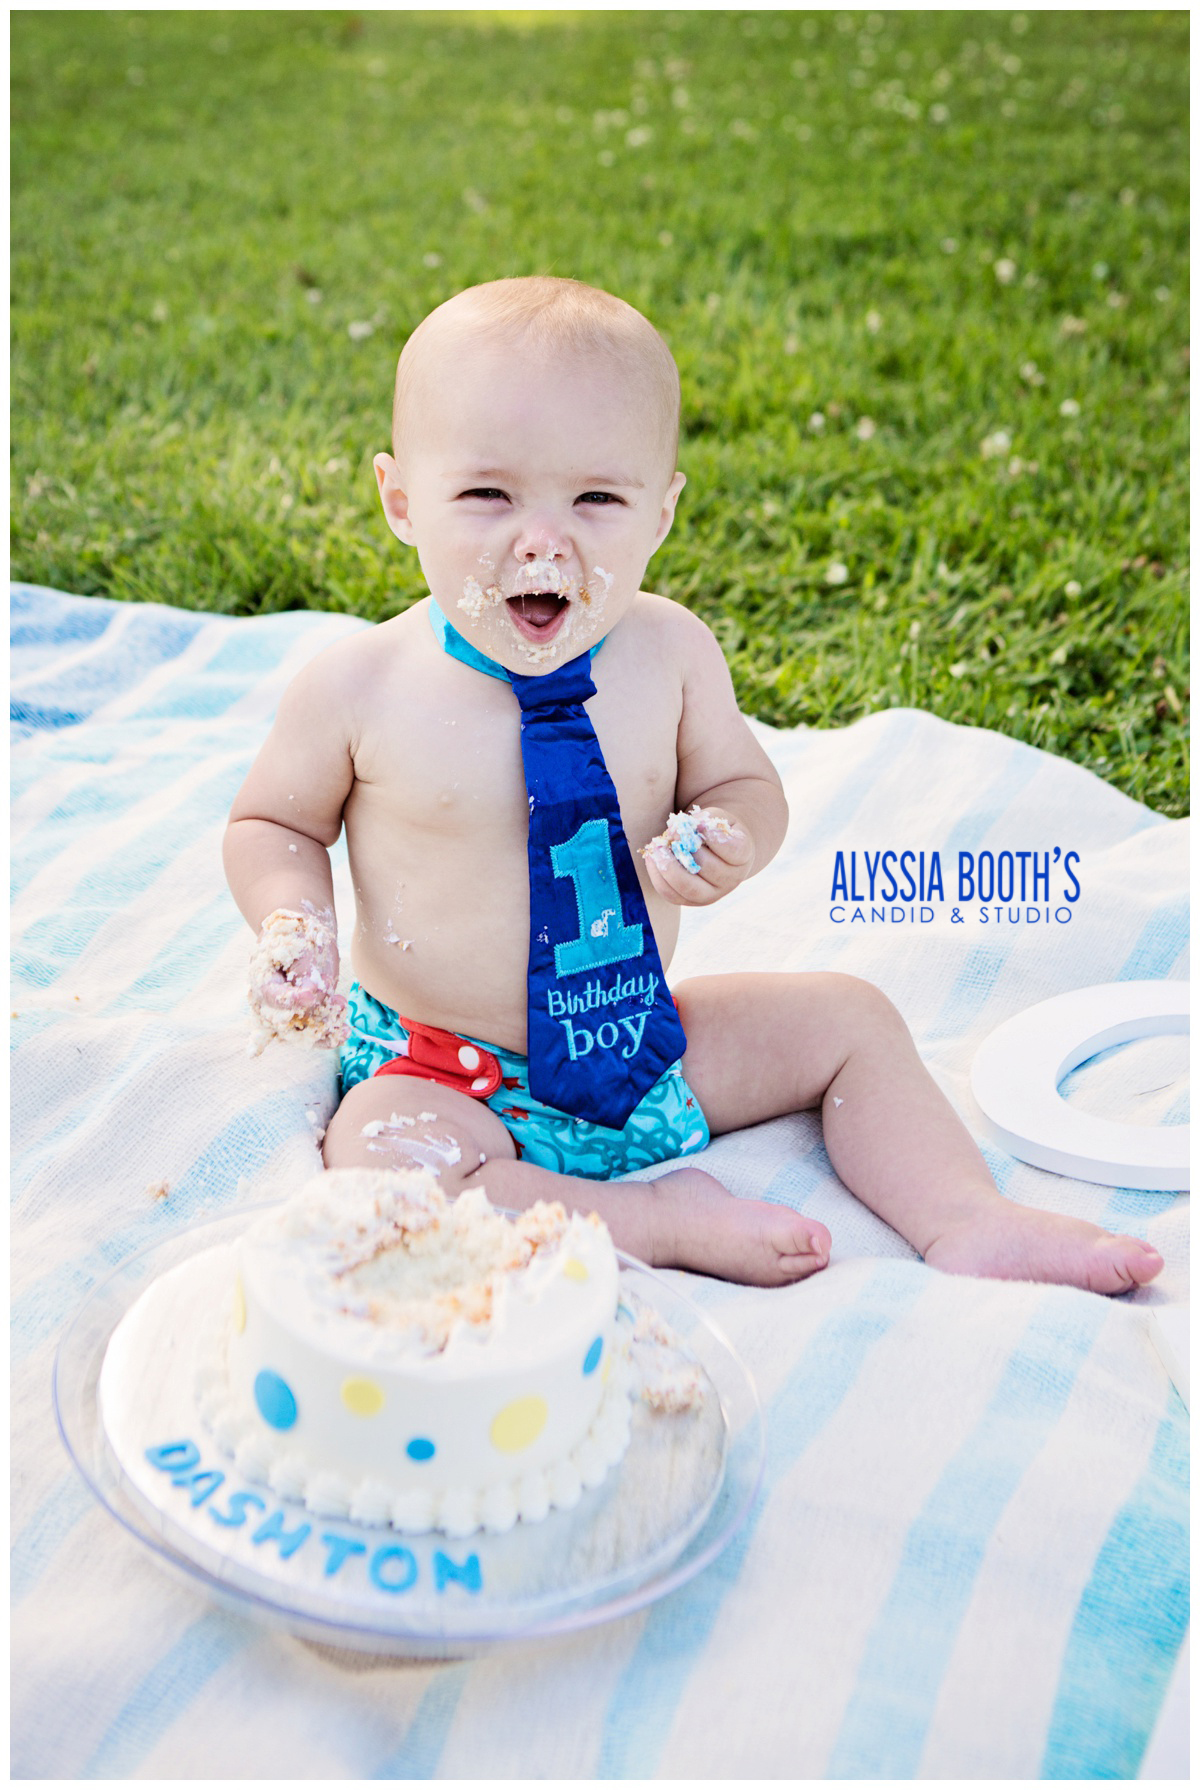 Boy | First Birthday Cake Smash | Alyssia Booth's Candid & Studio | Michigan Photographer